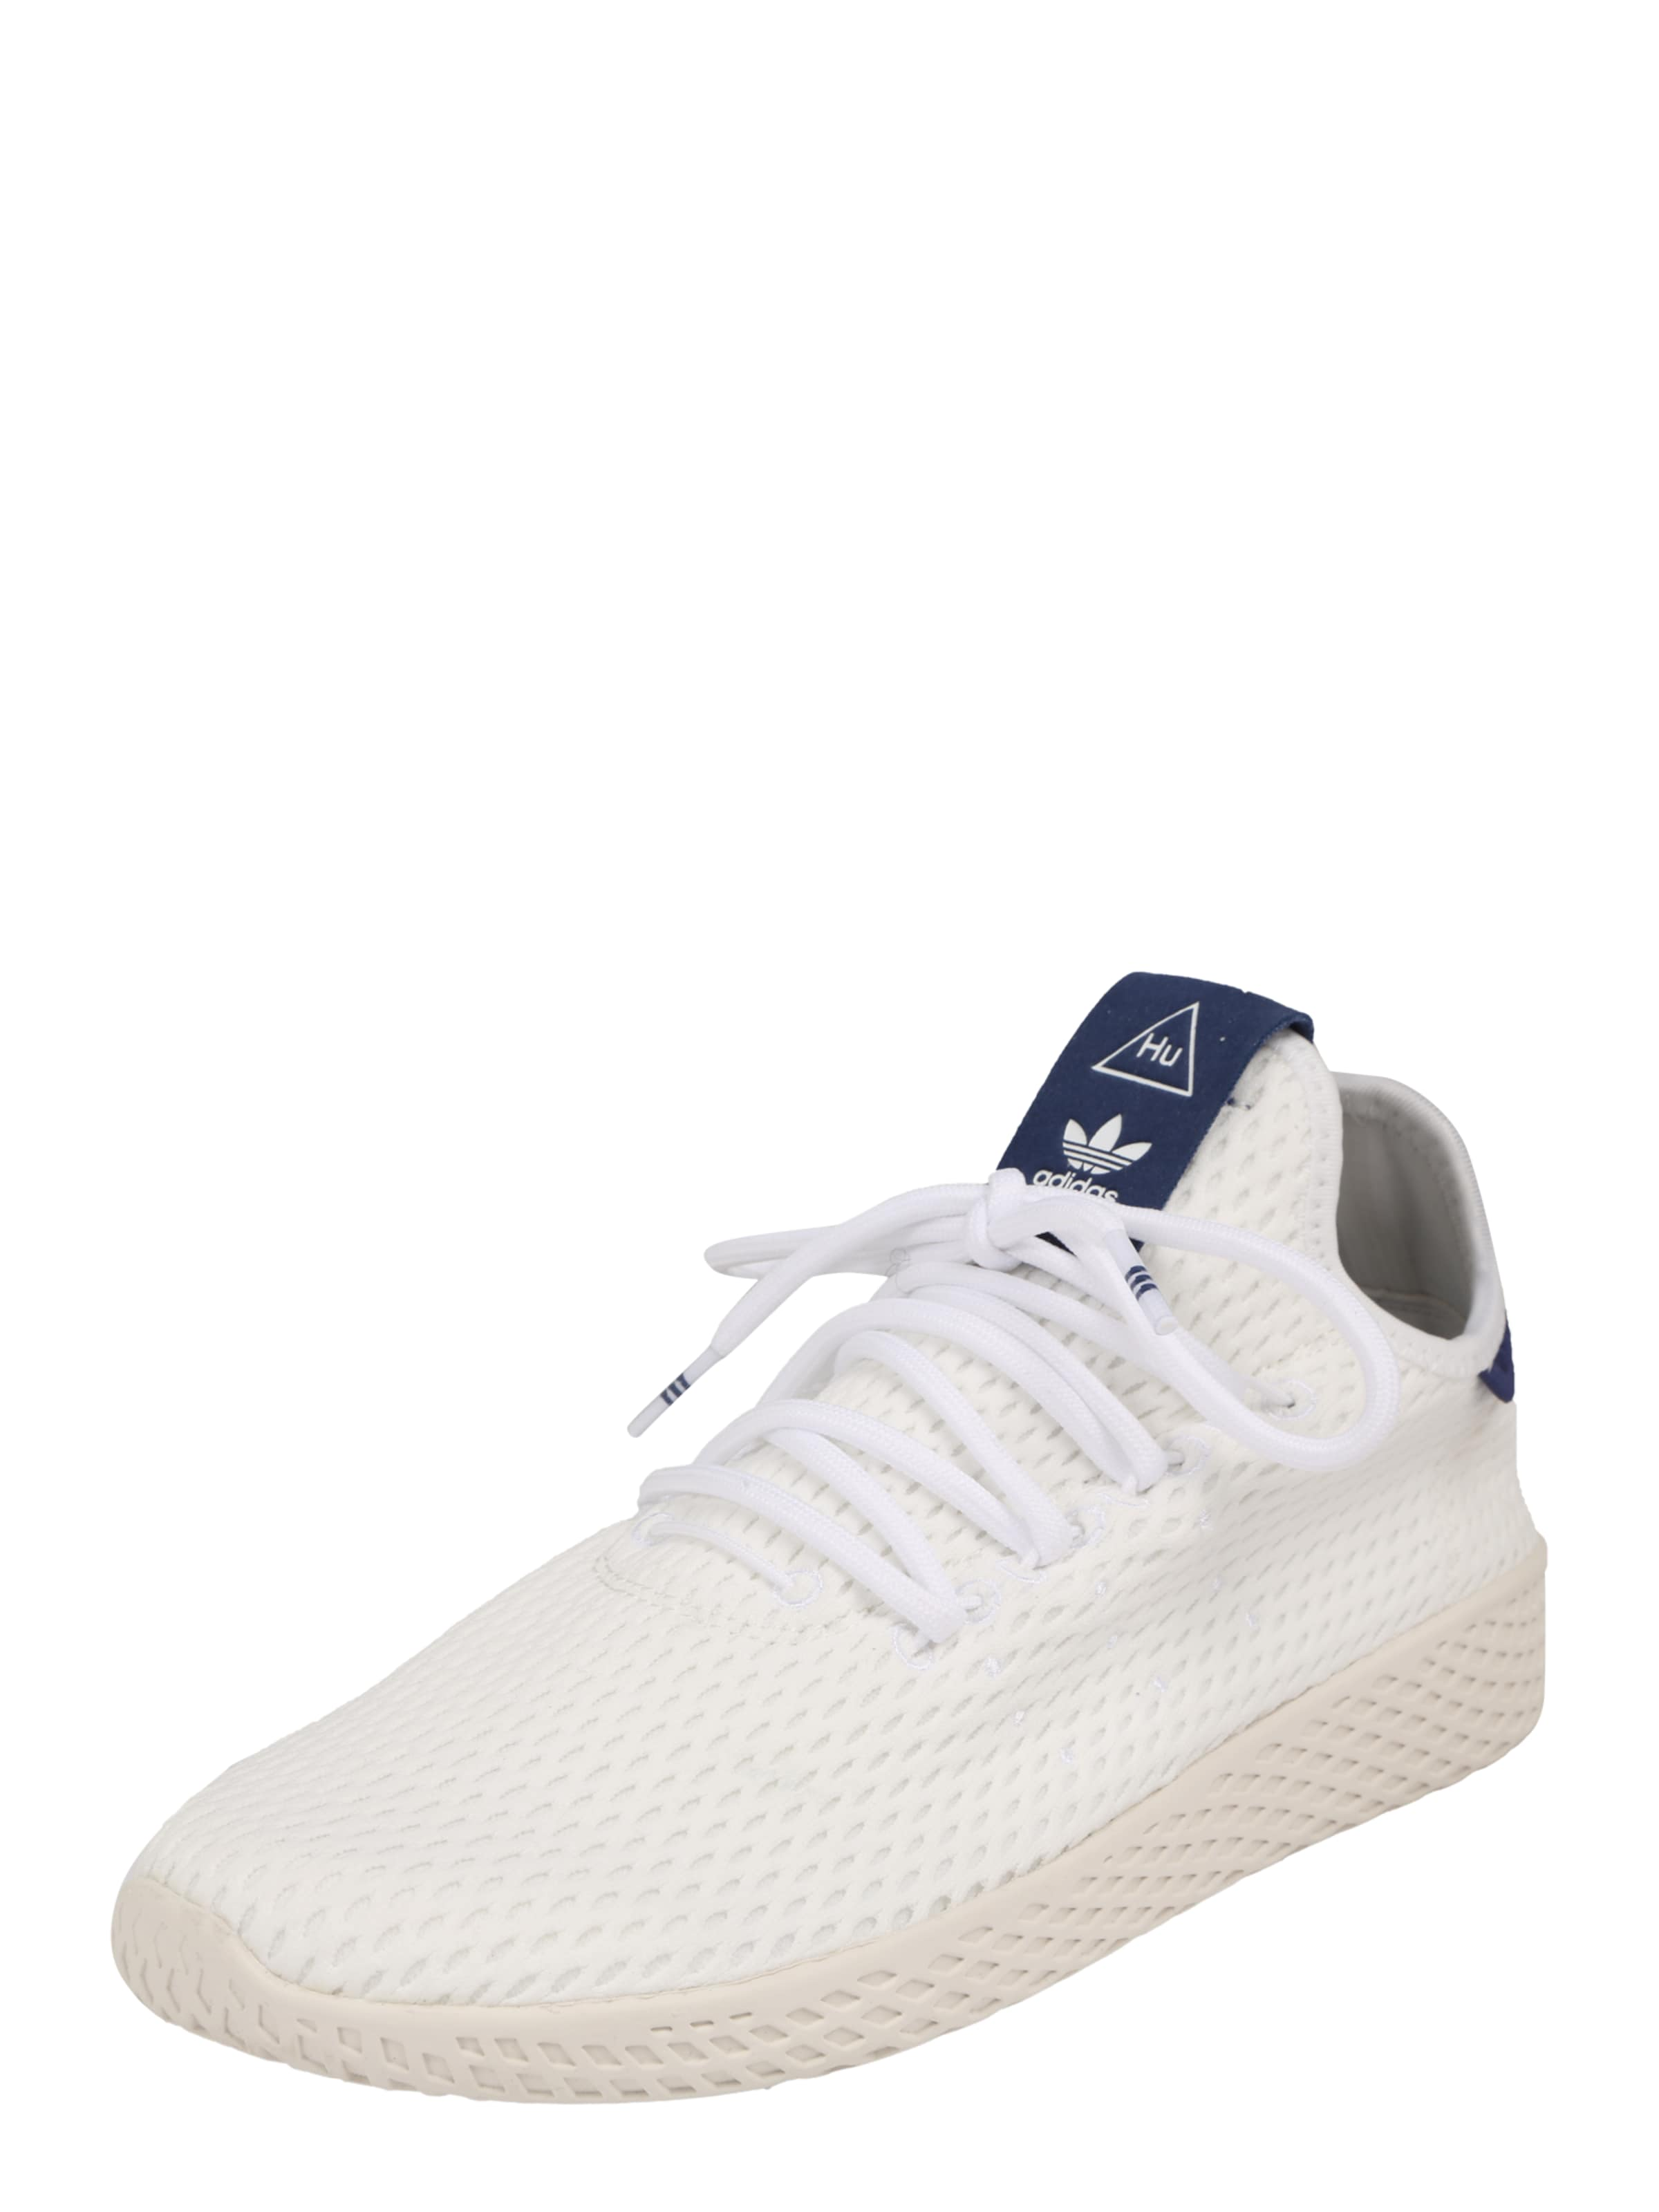 ADIDAS ORIGINALS Sneaker  TENNIS